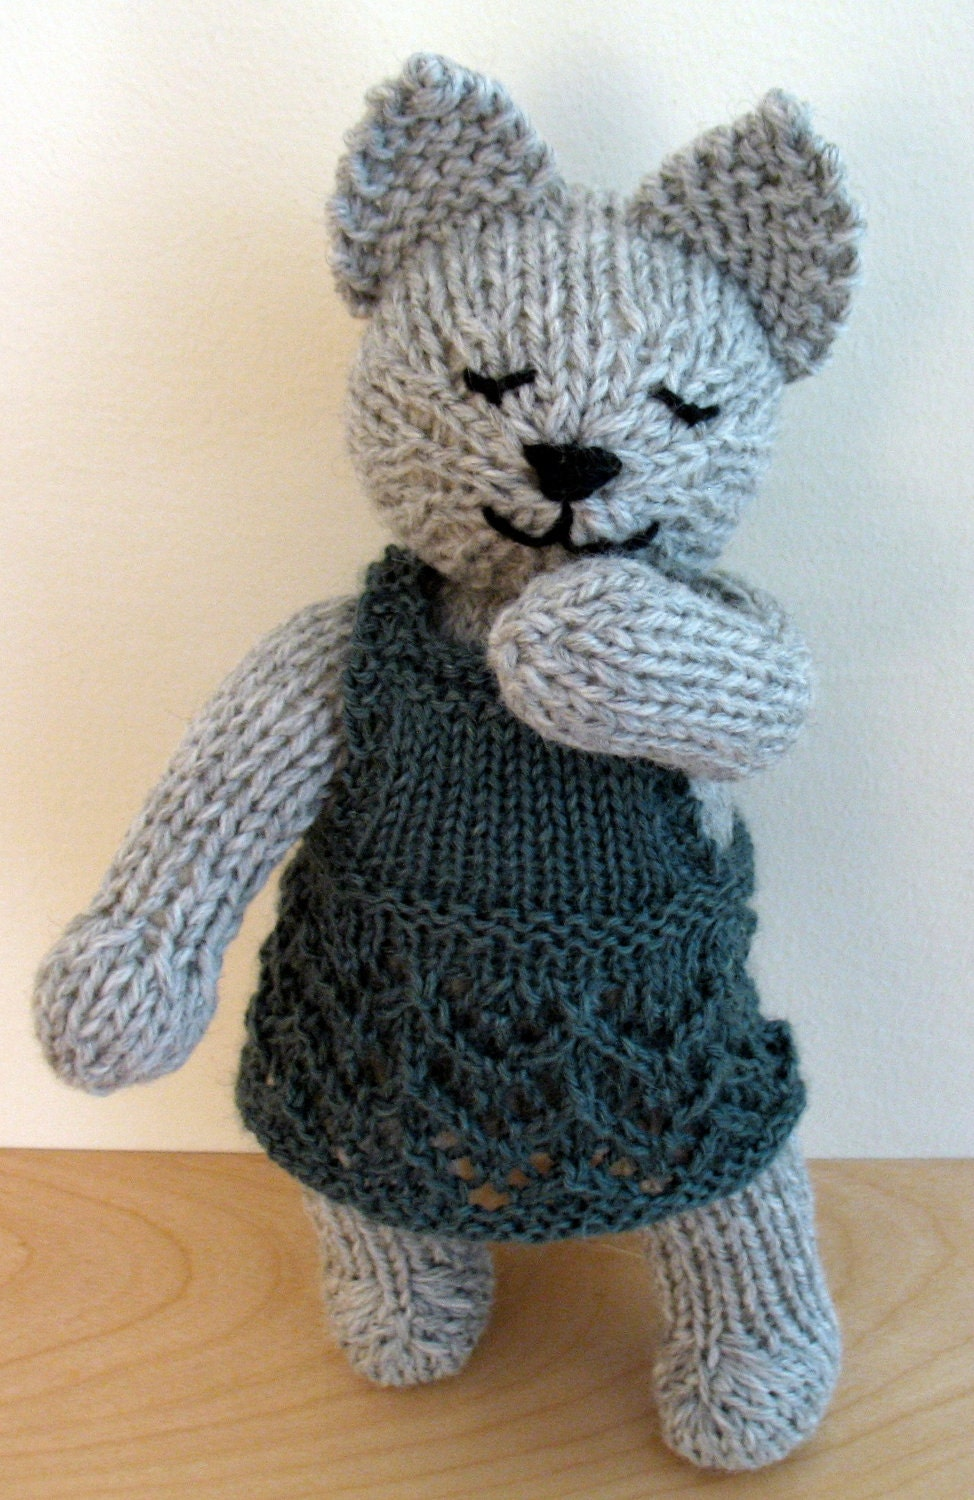 Knitting Patterns For Cat Clothes Or Toys : ClementineHand Knit Wool Cat